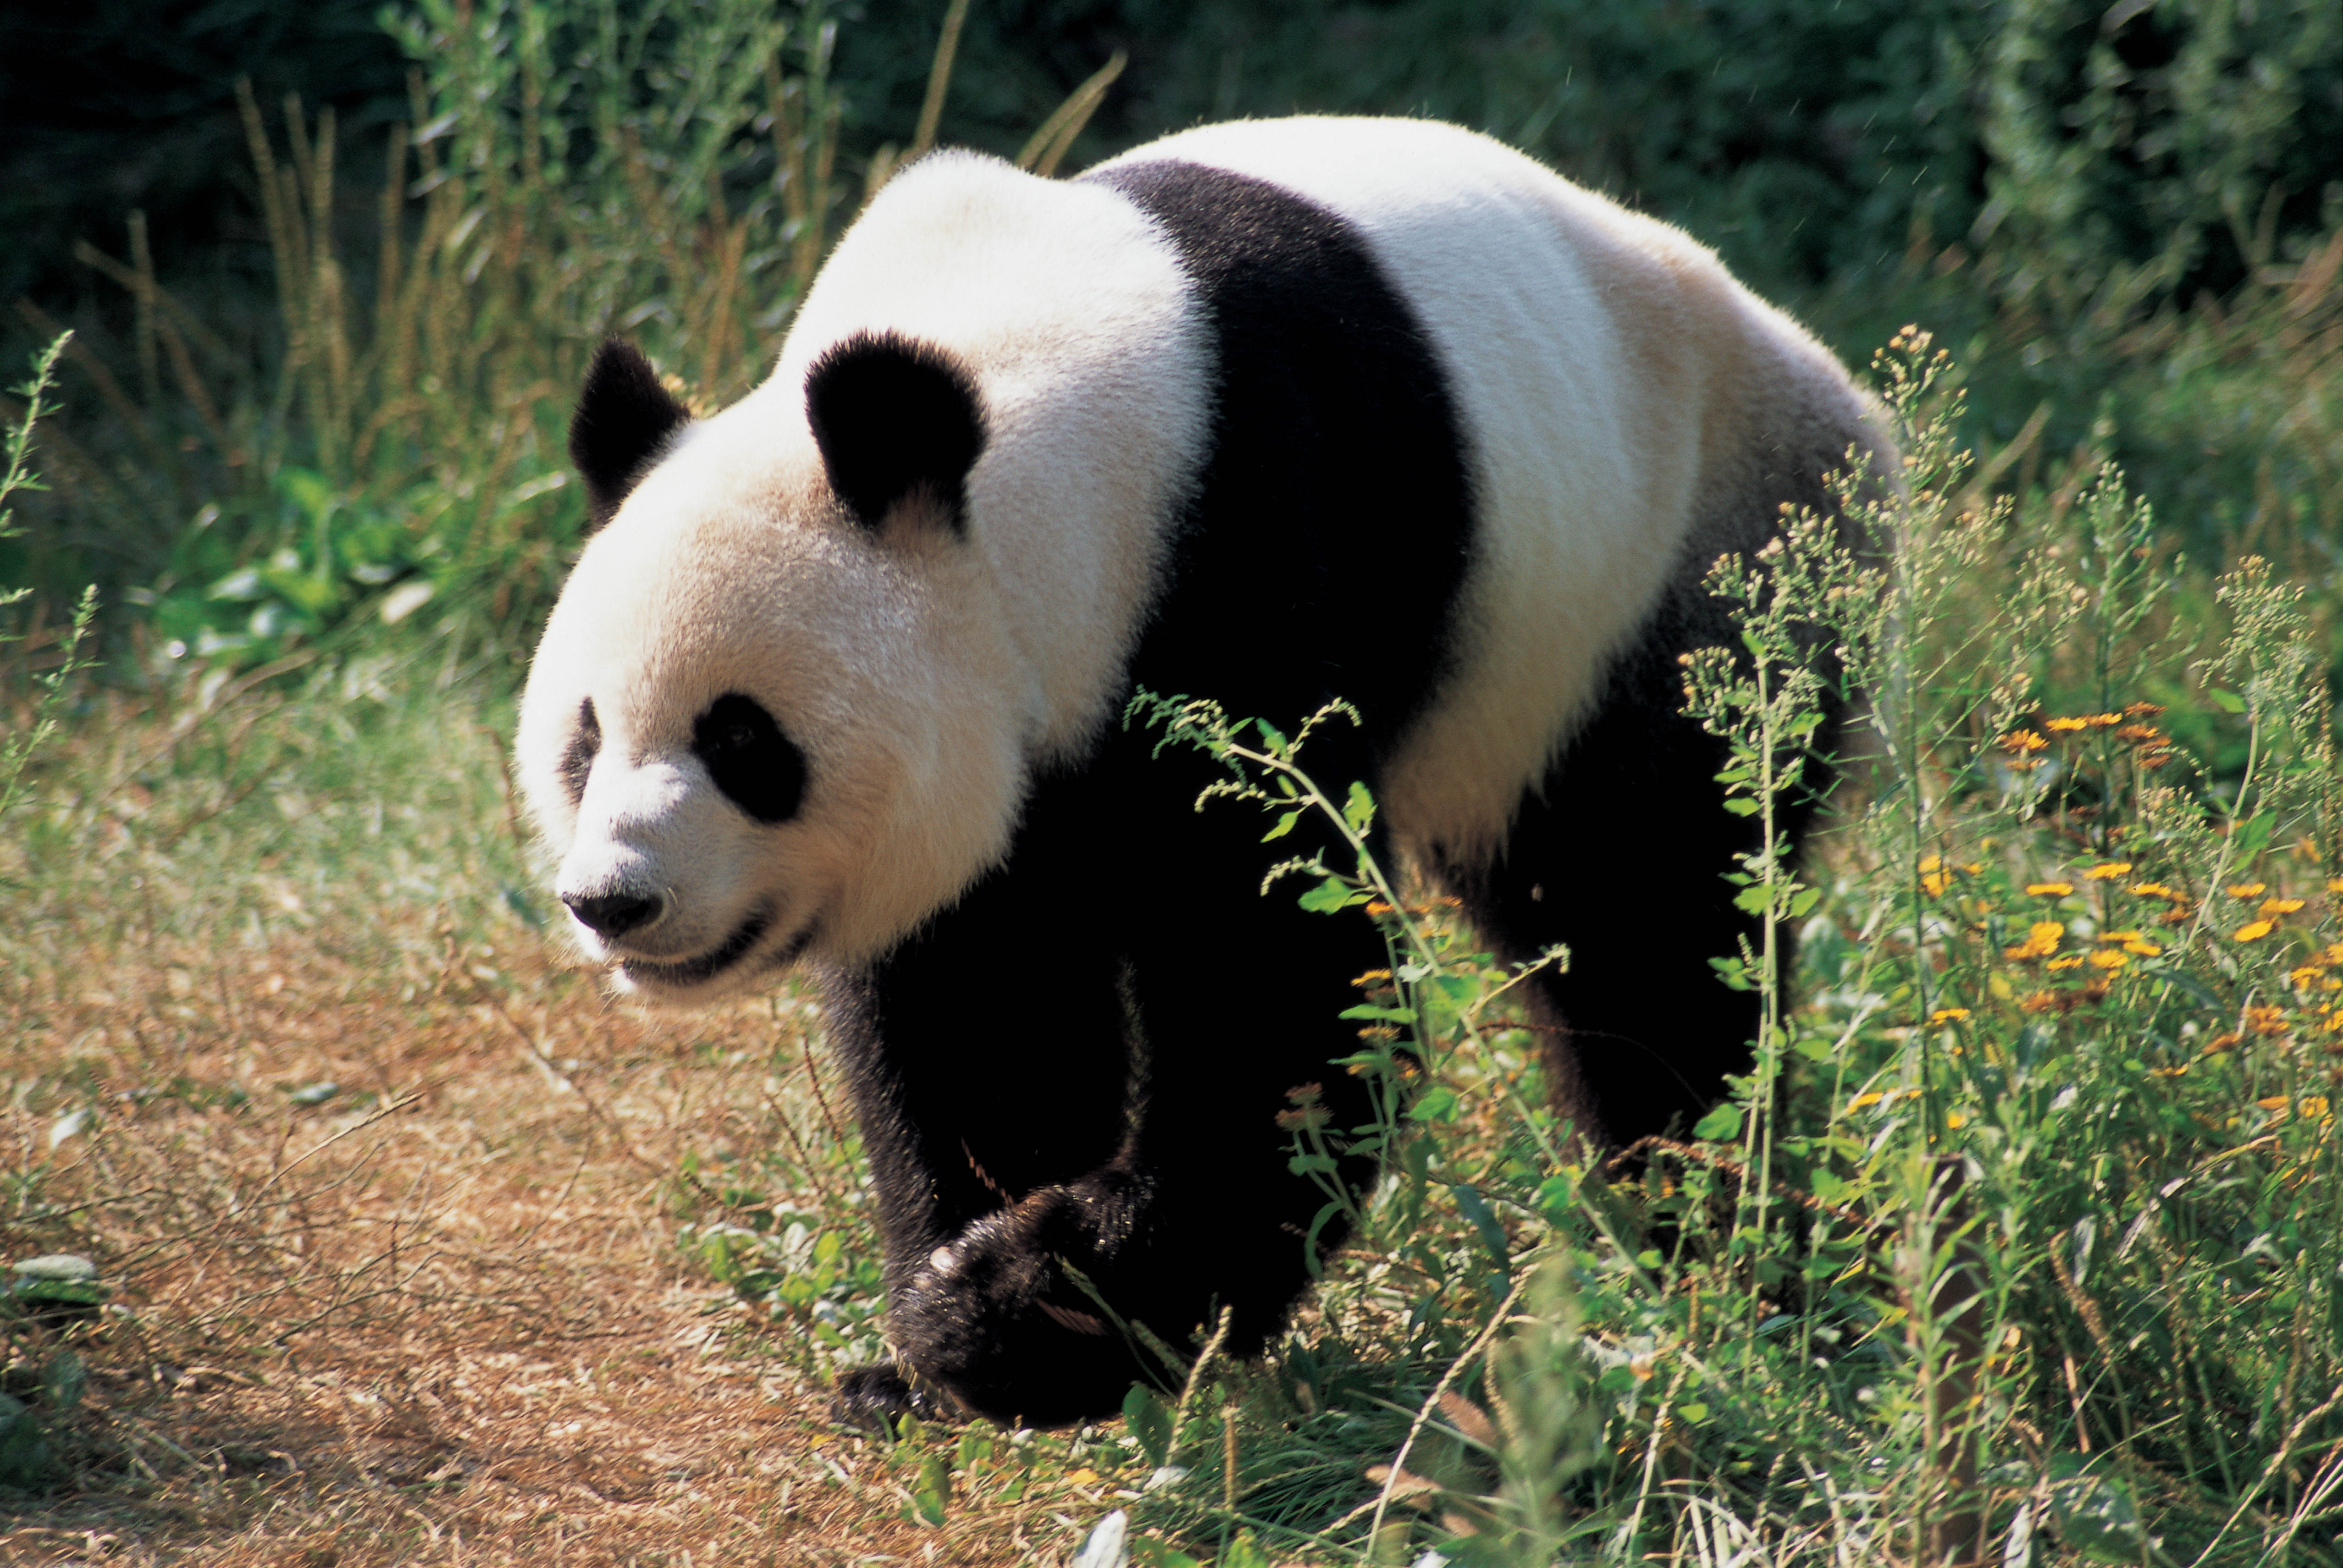 91956 download wallpaper Animals, Panda, Bear, Grass screensavers and pictures for free